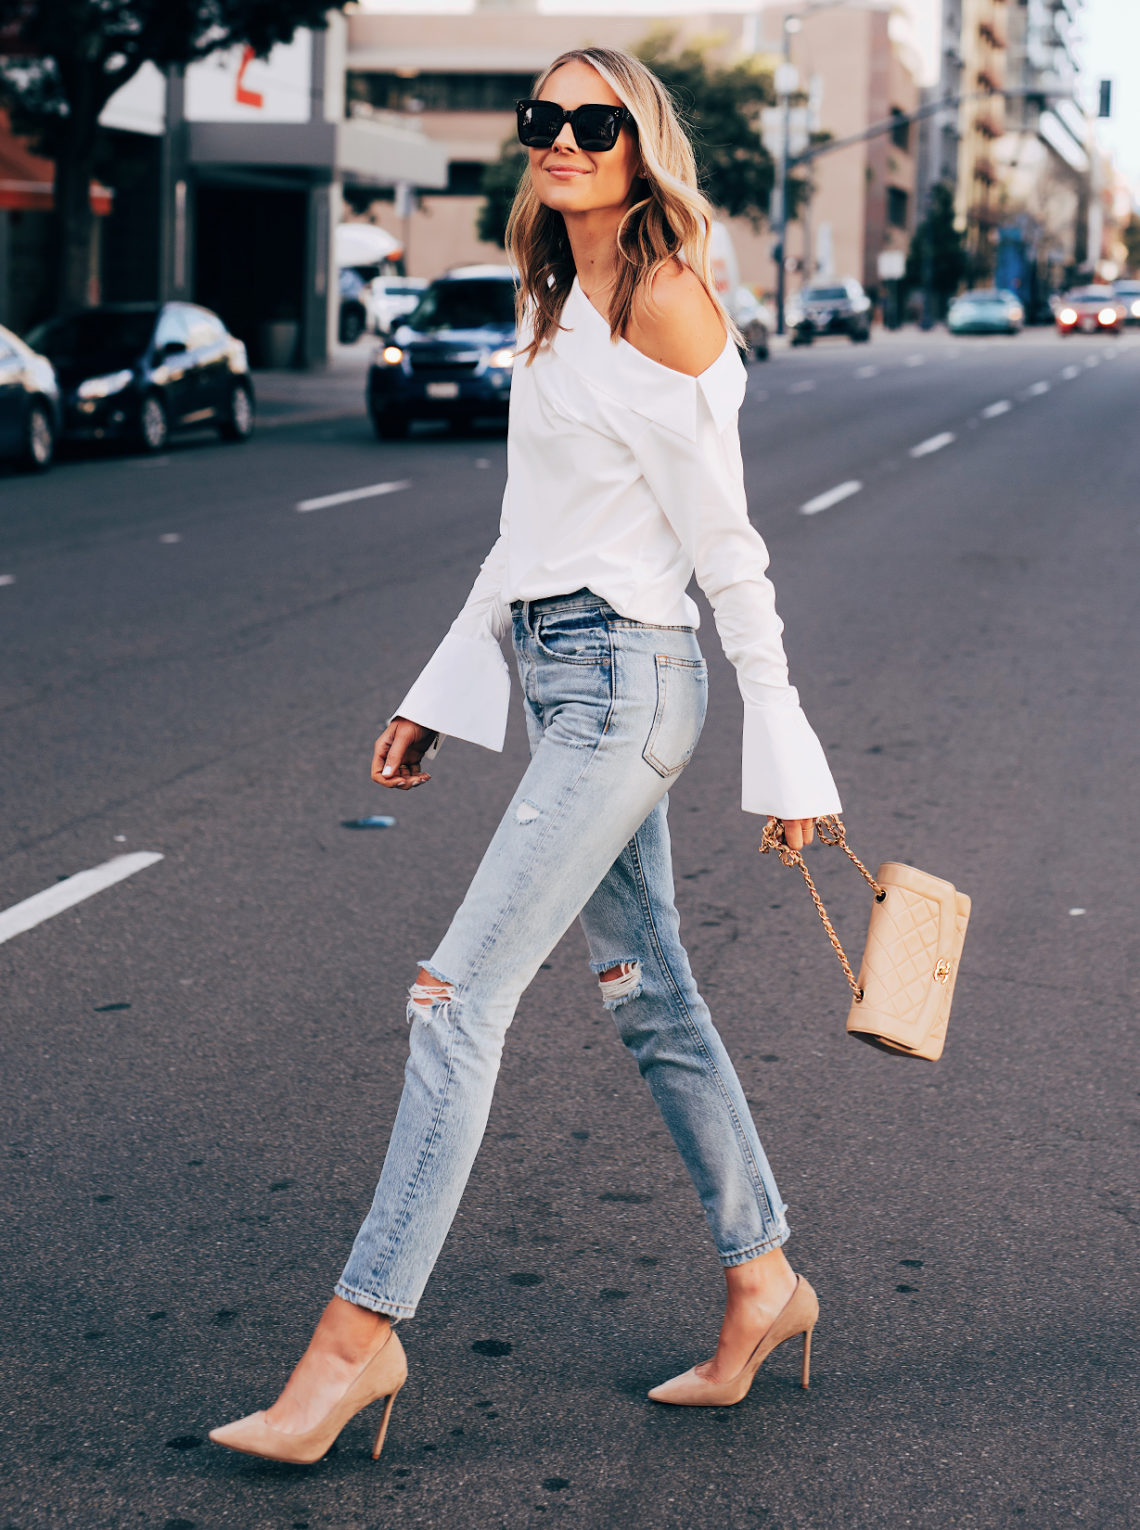 Fashion Jackson Wearing White off the Shoulder Top Denim Ripped Jeans Nude Pumps Tan Handbag Featured Image